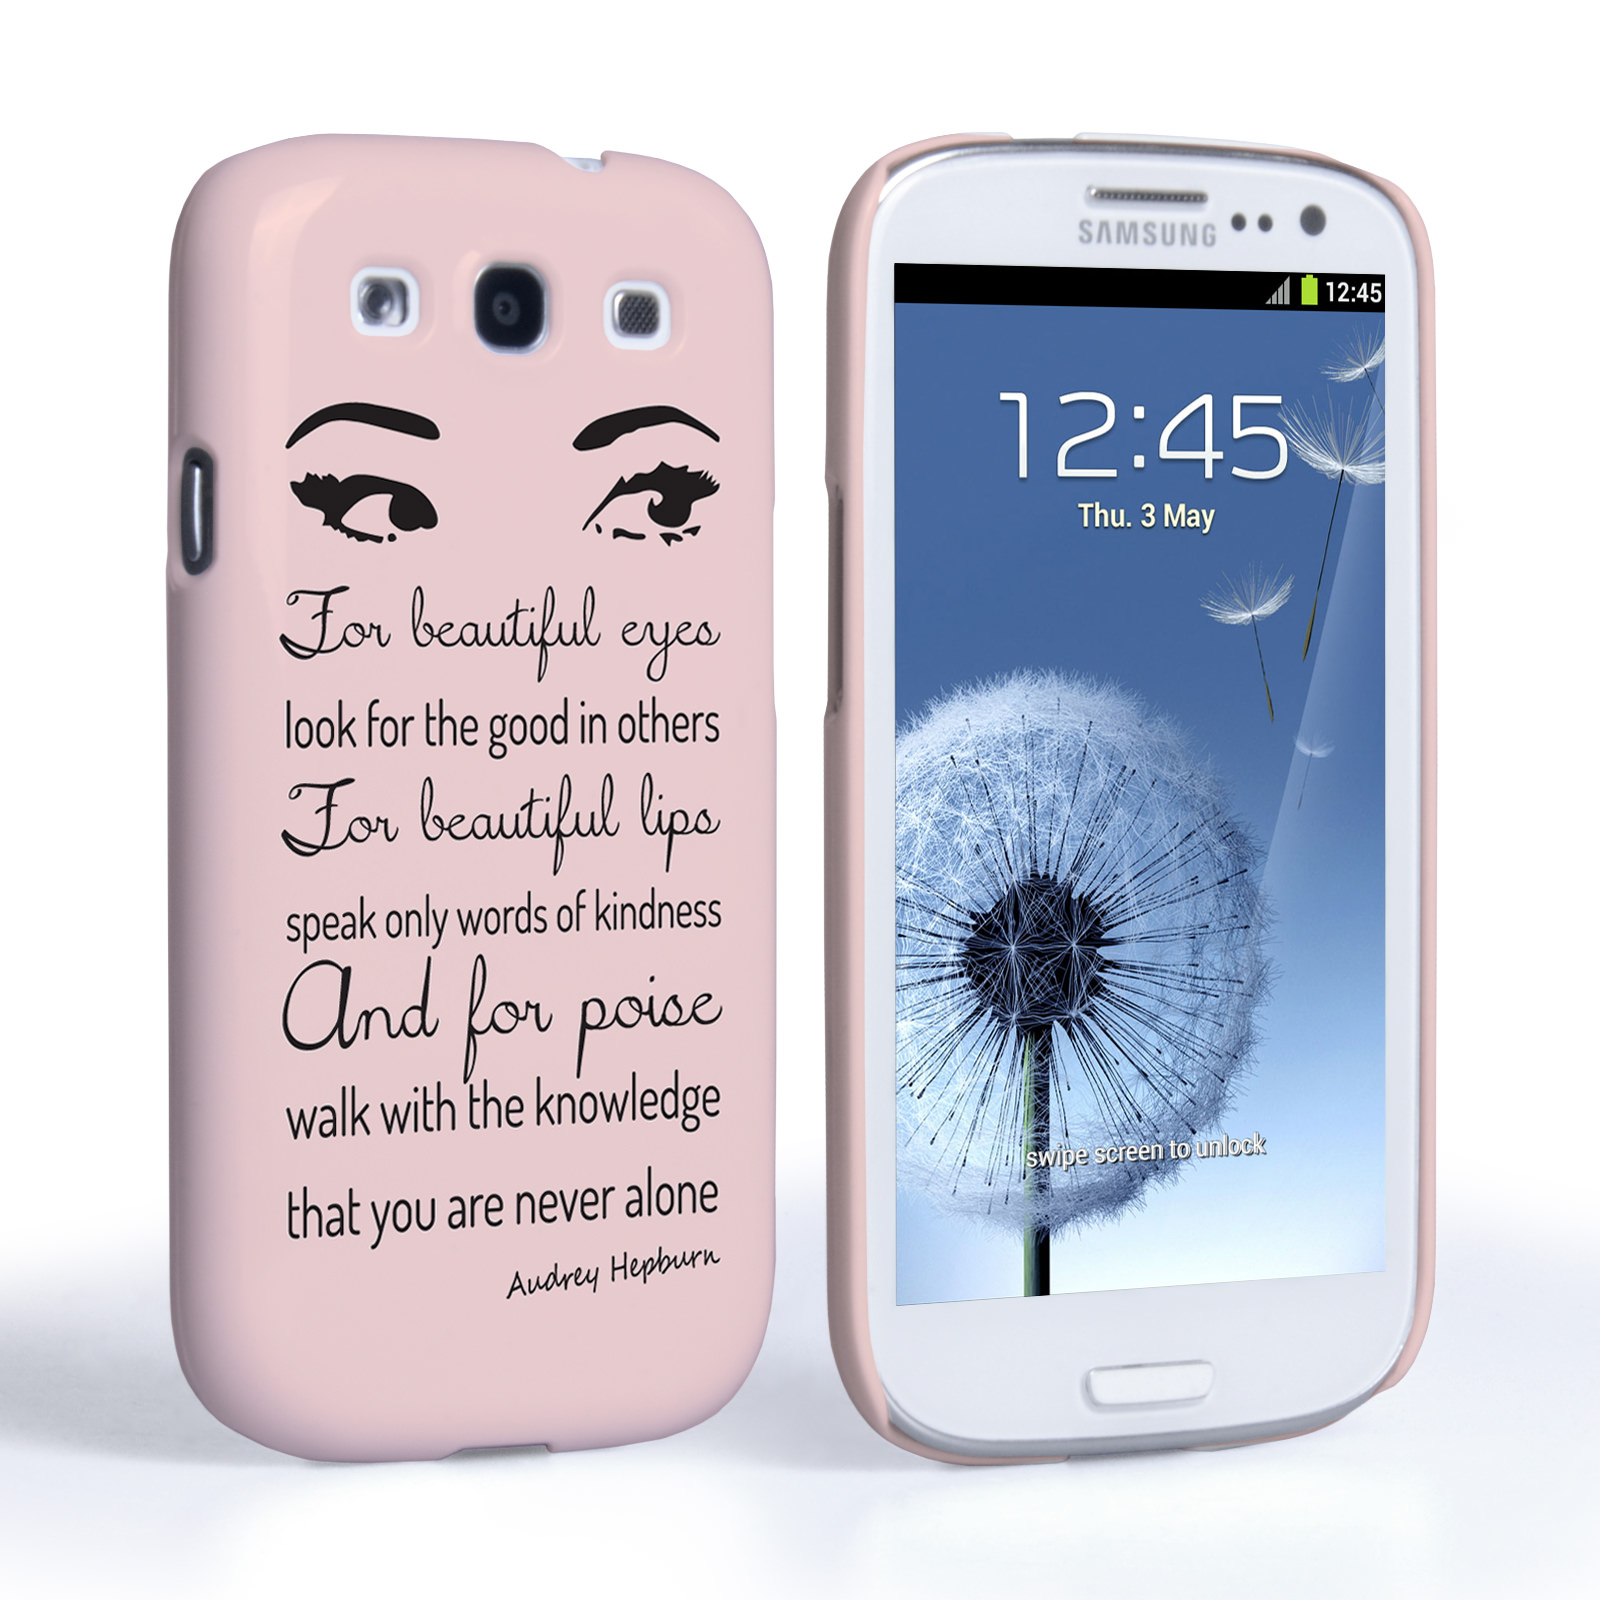 Samsung Quote Caseflex Samsung Galaxy S3 Audrey Hepburn 'eyes' Quote Case